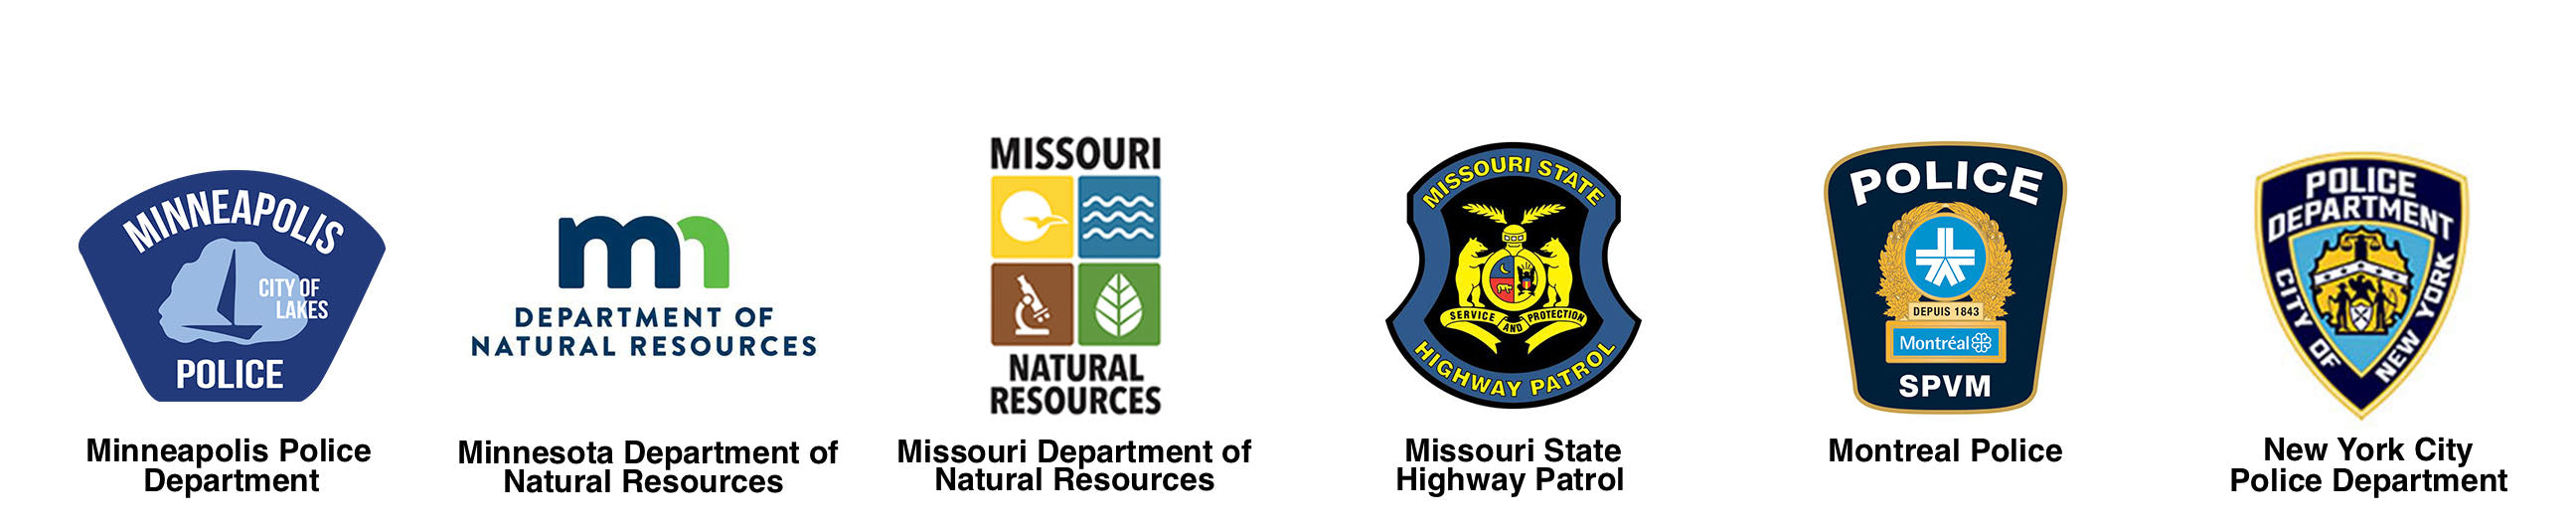 Minneapolis PD, Minnesota Department of Natural Resources, Missouri Department of Natural Resources, Missouri State Highway Patrol, Montreal Police, NYPD